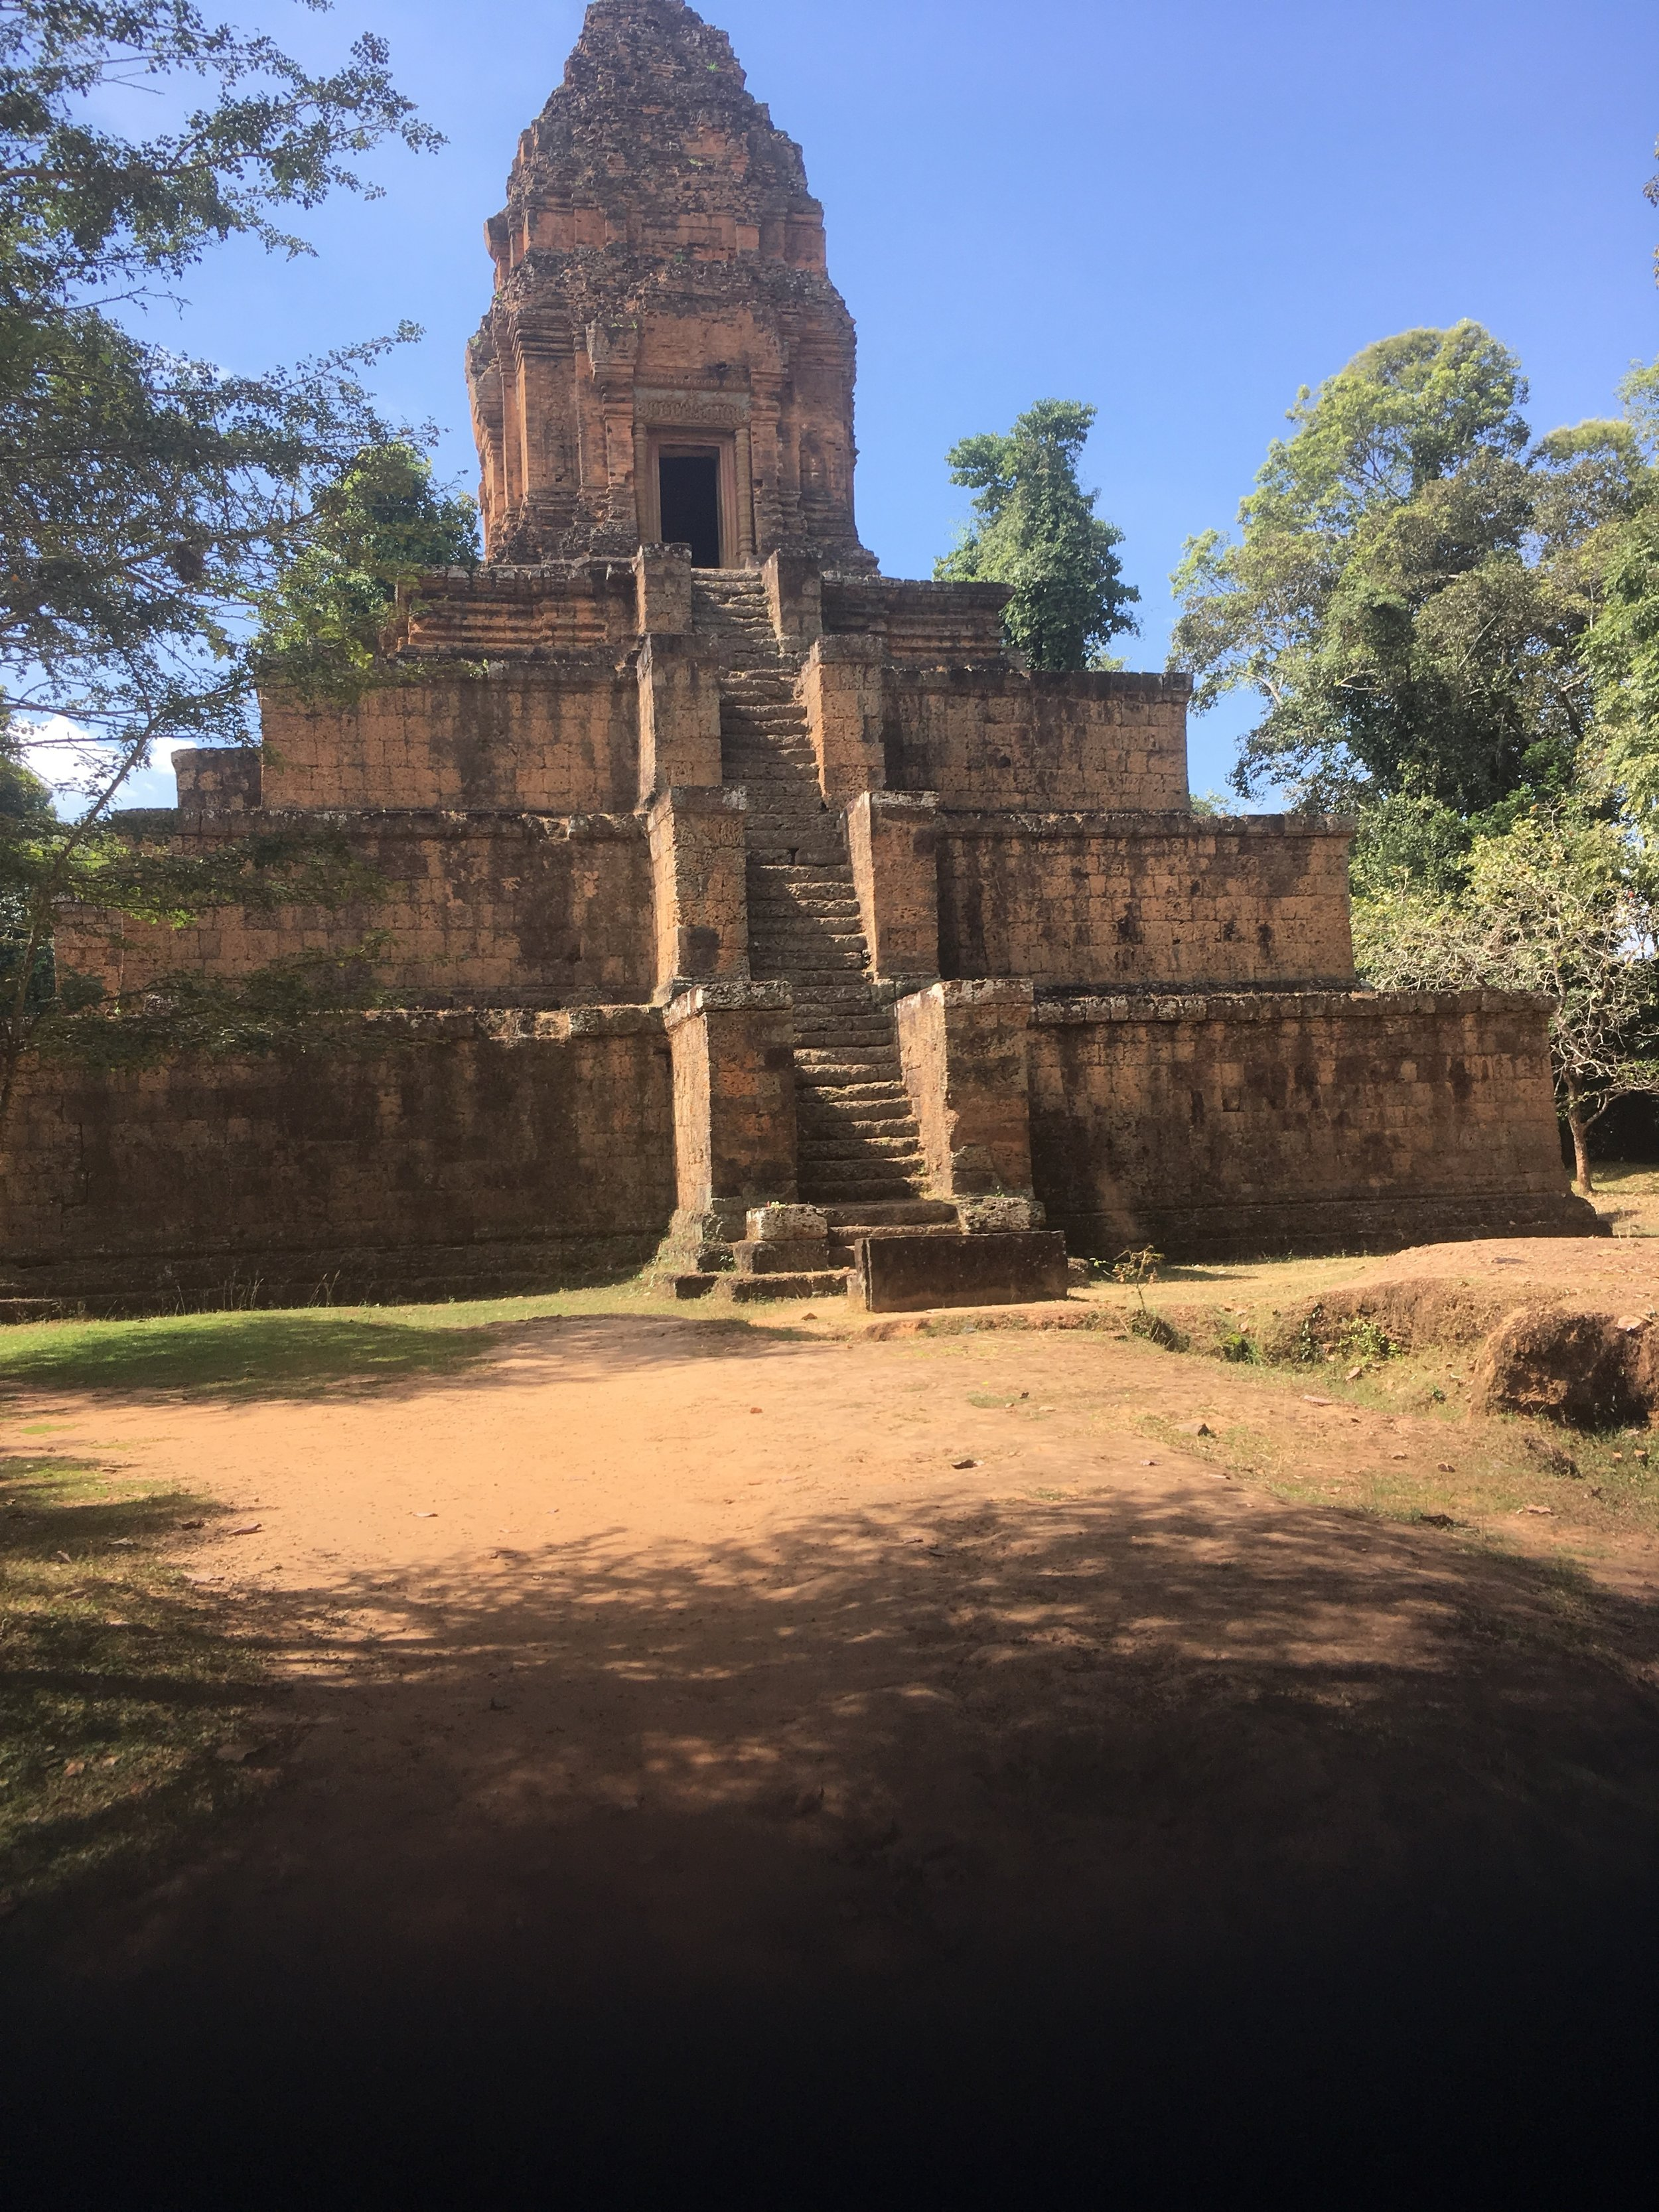 The steep steps at Baksei Chamkrong temple